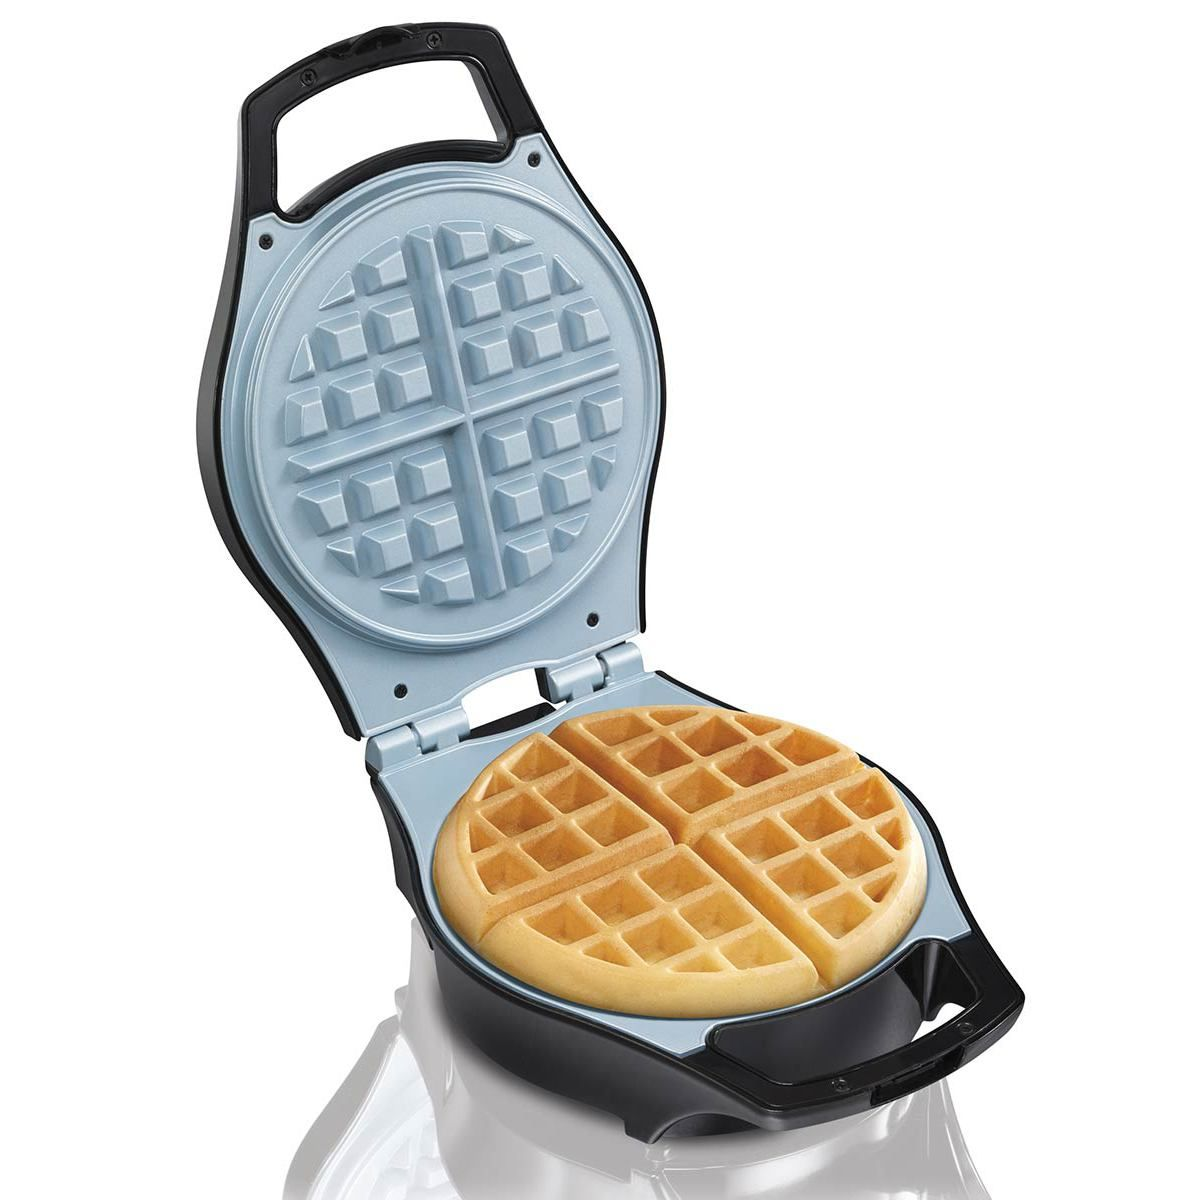 BELGIAN WAFFLE MAKER Rotating Round Flippable Ceramic Copper